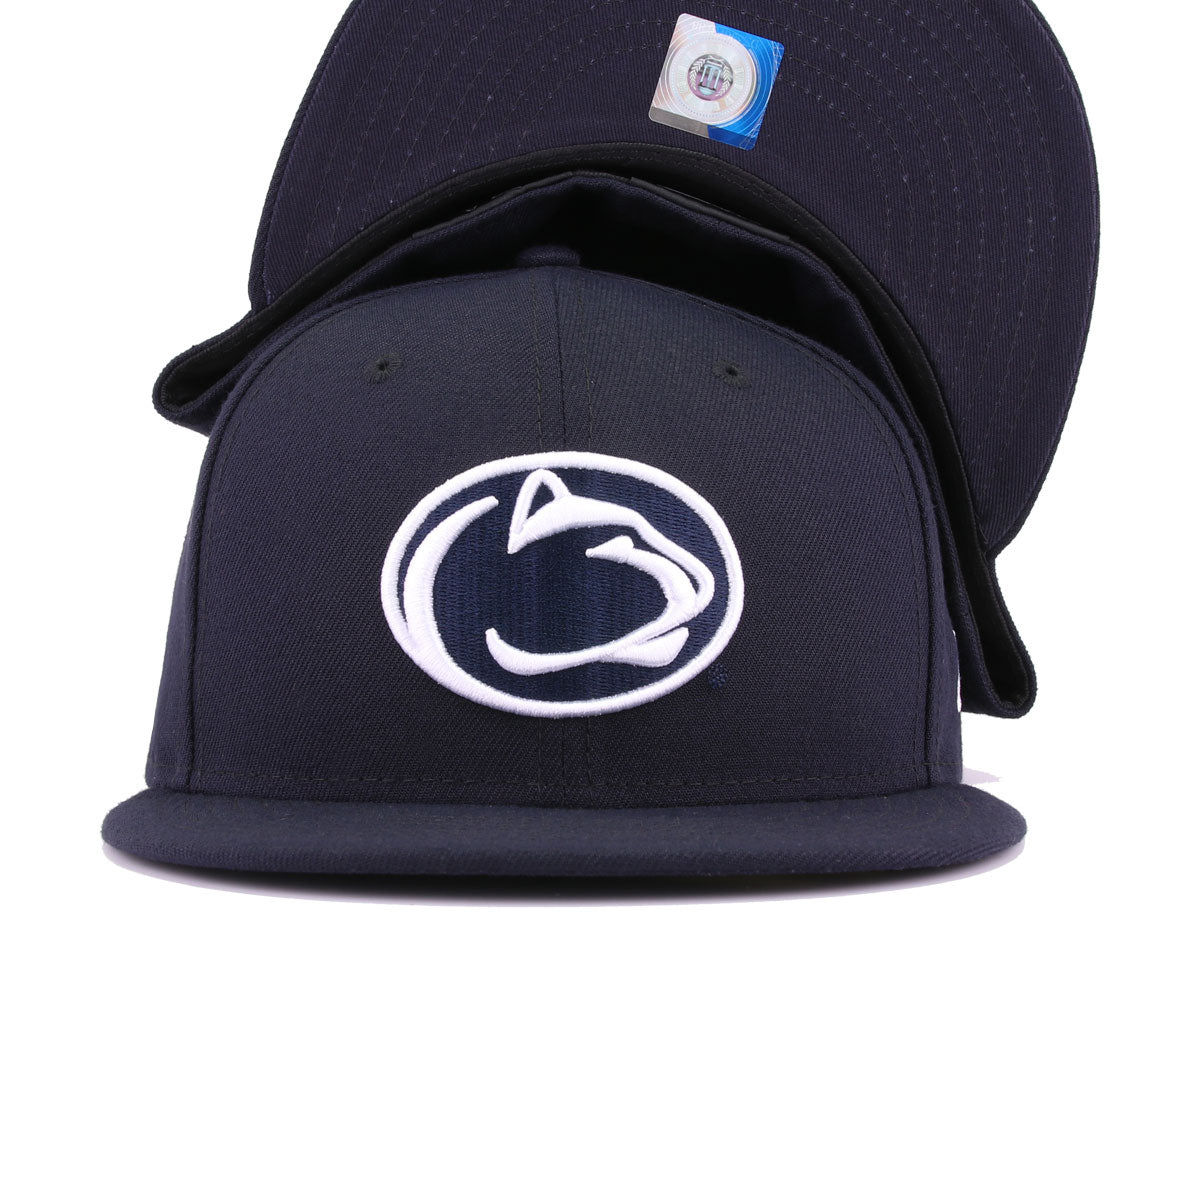 Penn State University Nittany Lions Navy New Era 59Fifty Fitted